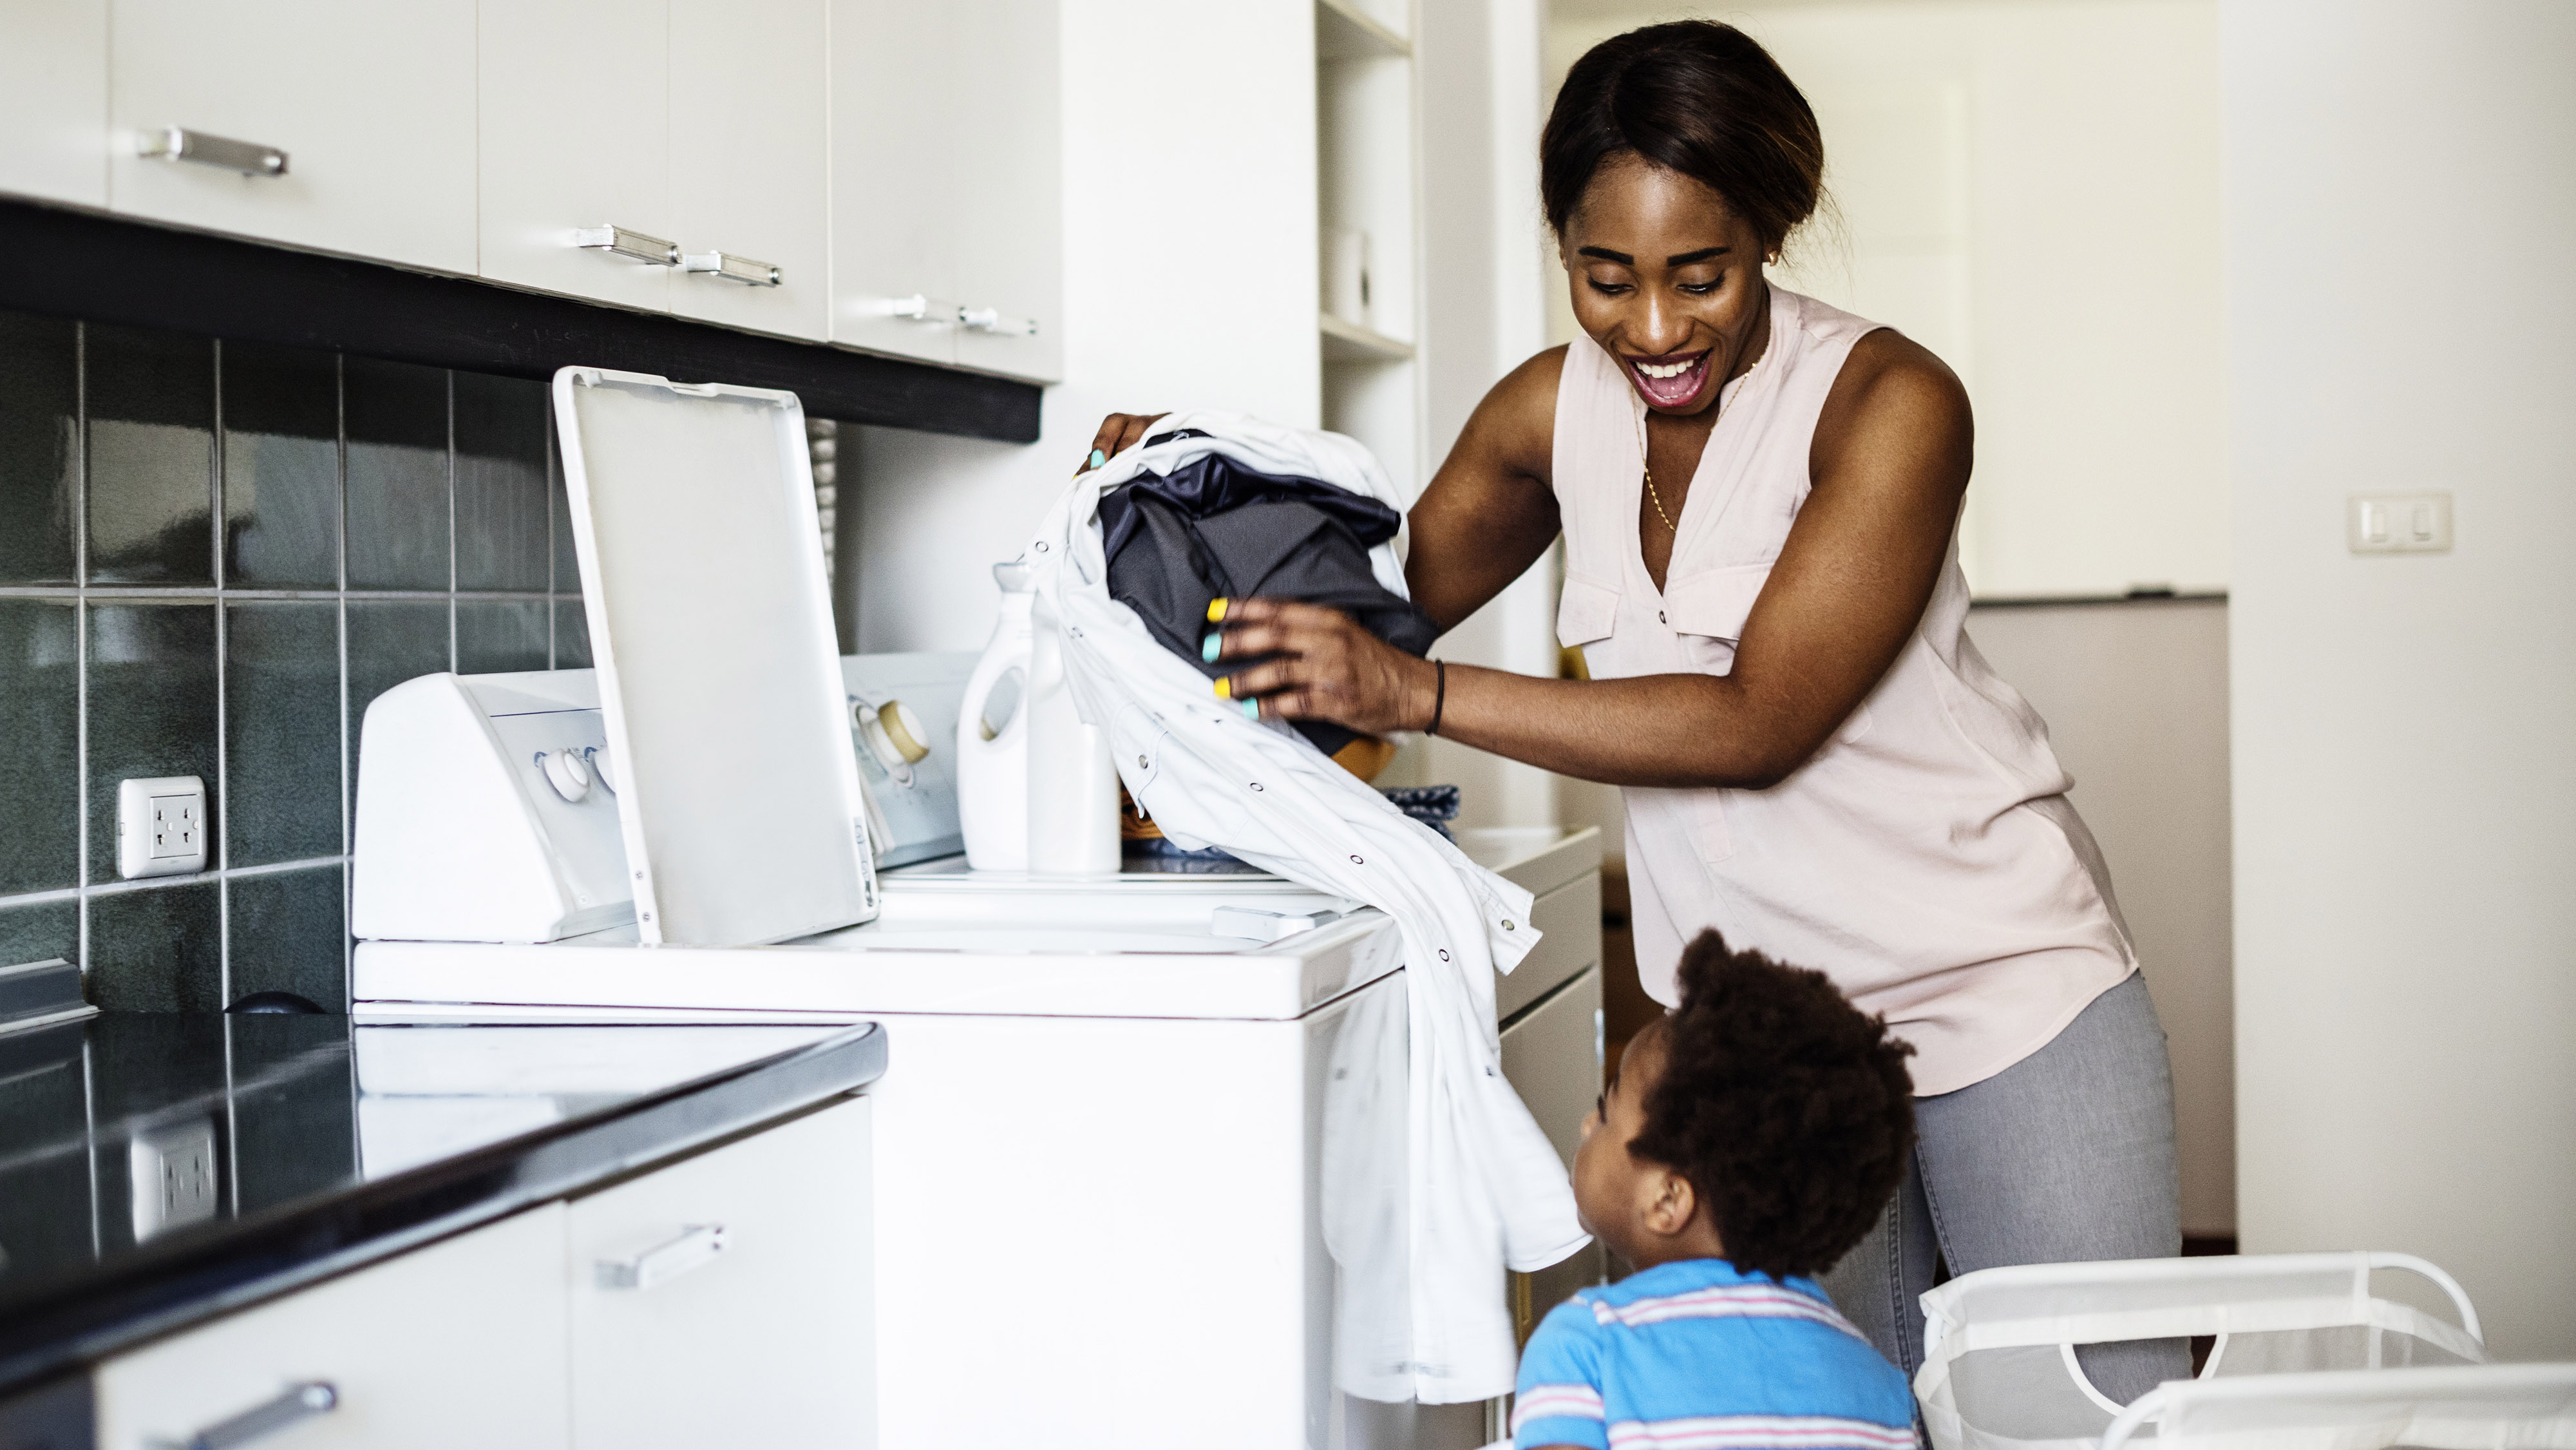 mother doing laundry with child watching